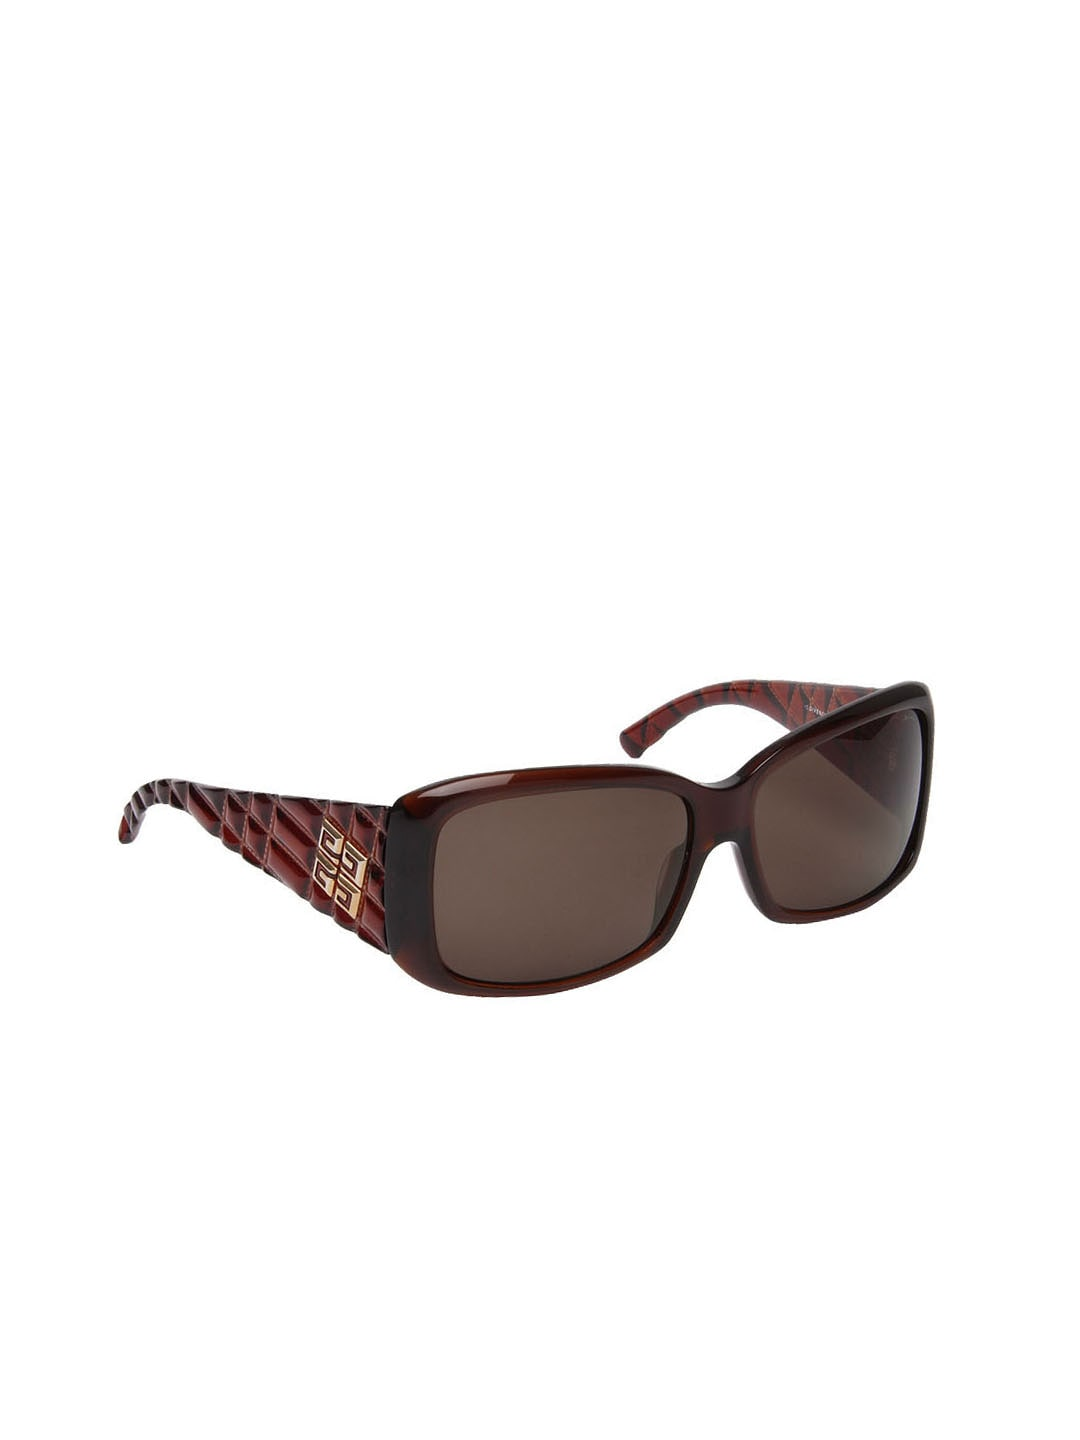 Givenchy Givenchy Women Sunglasses SGV-653 COL-0958 (Transperant)